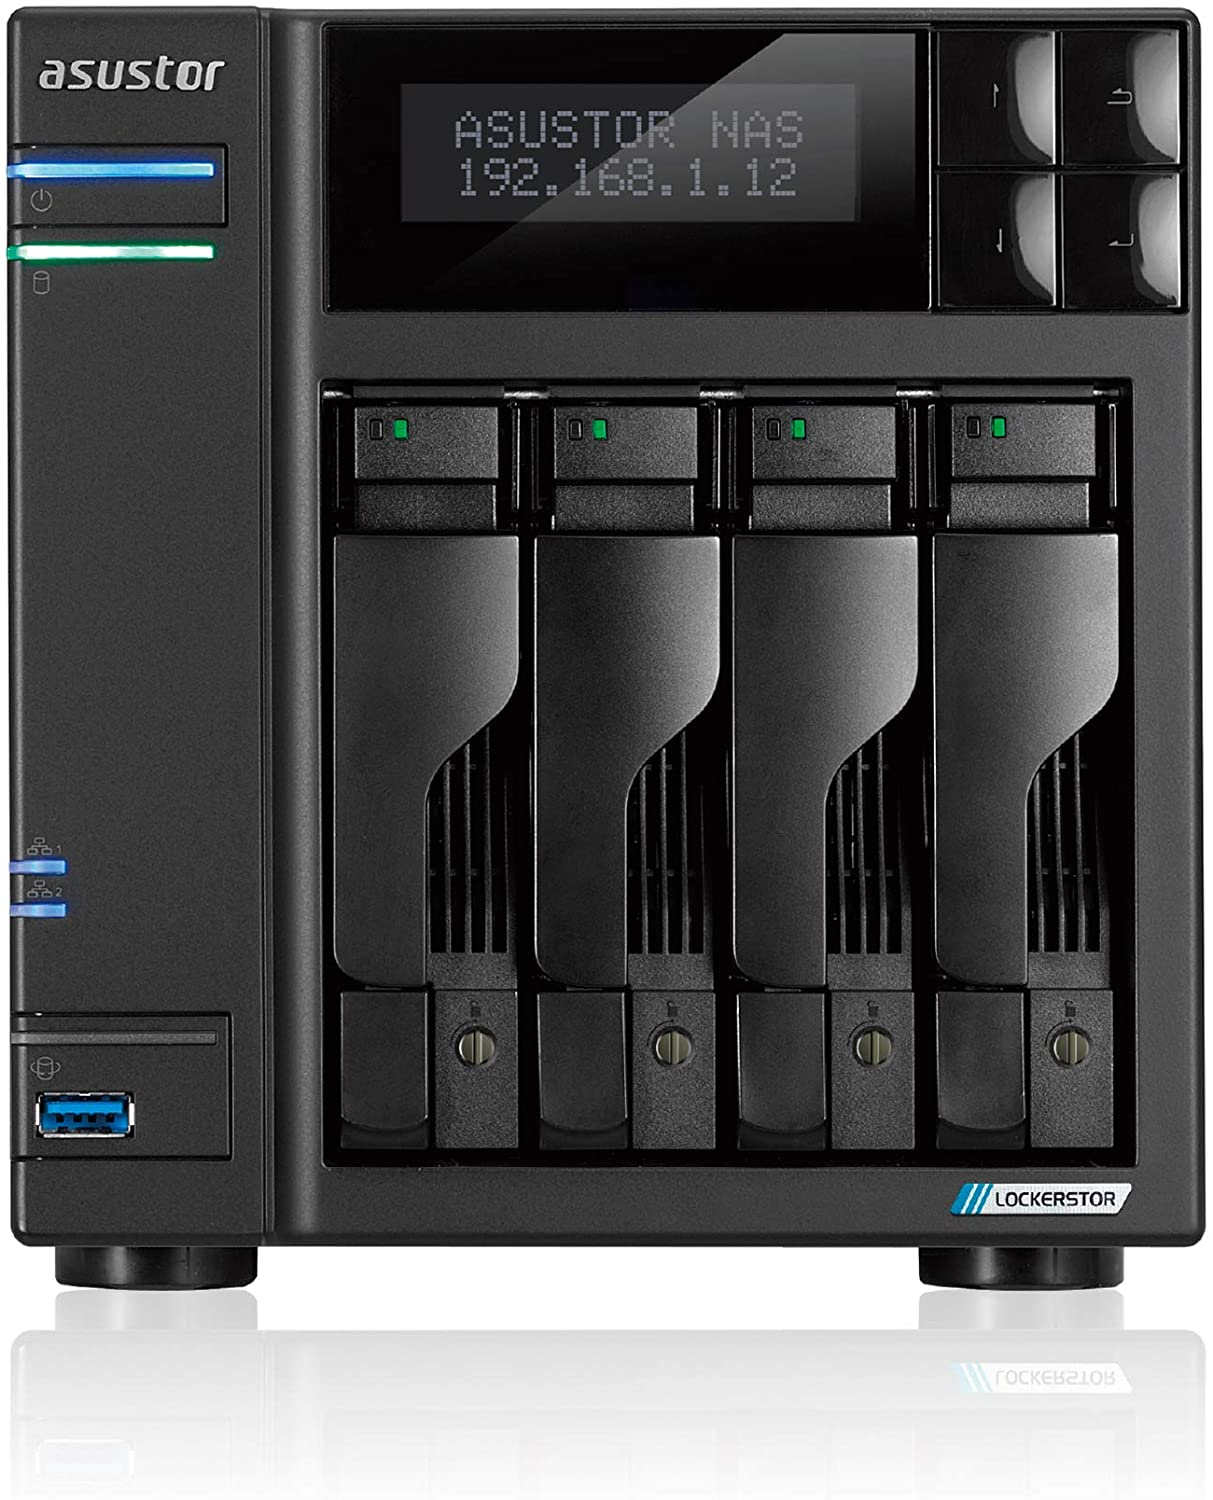 NAS Asustor Lockerstor 4 AS6604T